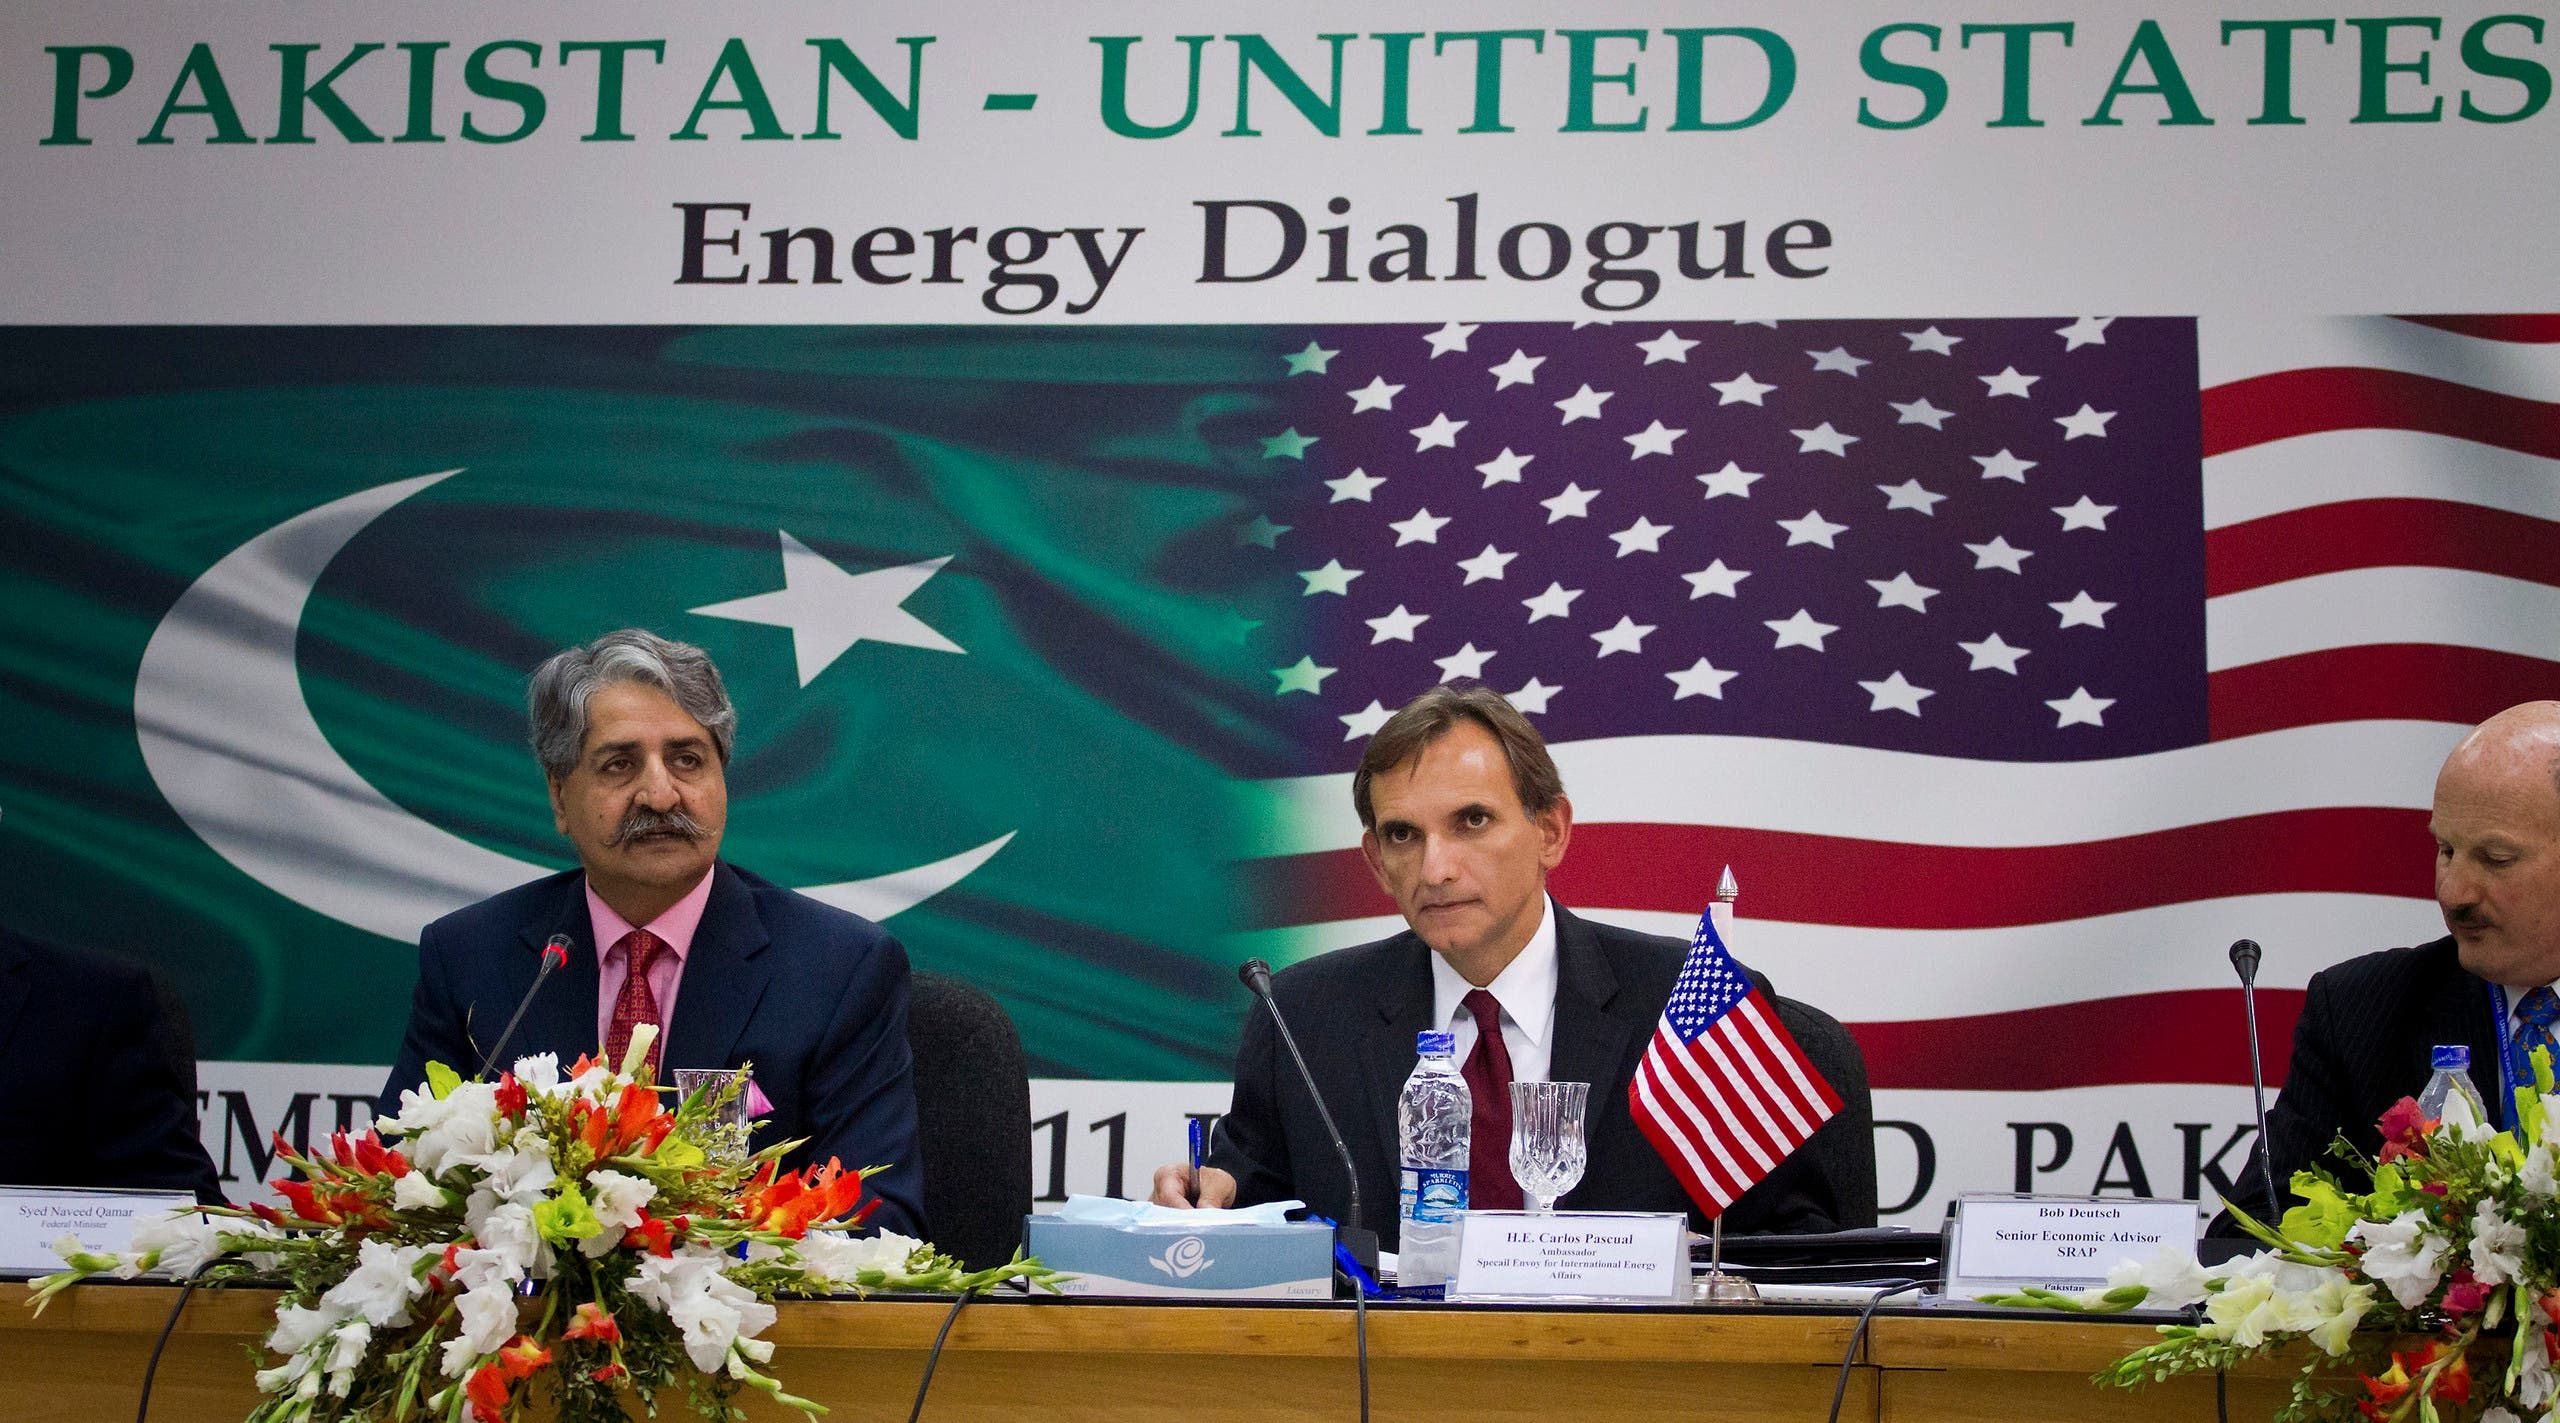 Pakistani Minister for Water and Power Naveed Qamar, left, speaks as US Special Envoy and Coordinator for International Energy Affairs, Carlos Pascual, right, looks on during the Pakistan-US Energy Dialogue in Islamabad, on Sept. 14, 2011. (File photo: AP)